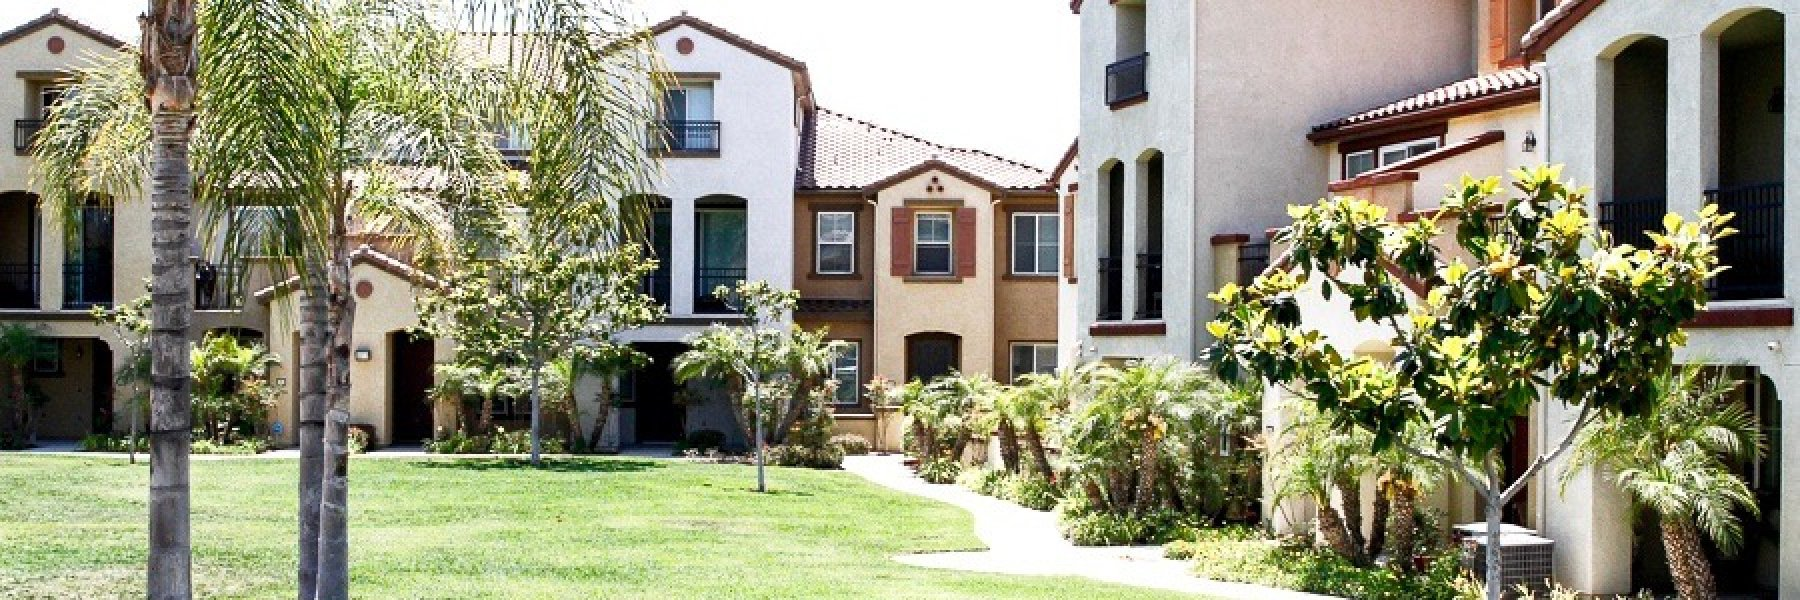 The Summit is a gated community of homes in Chula Vista